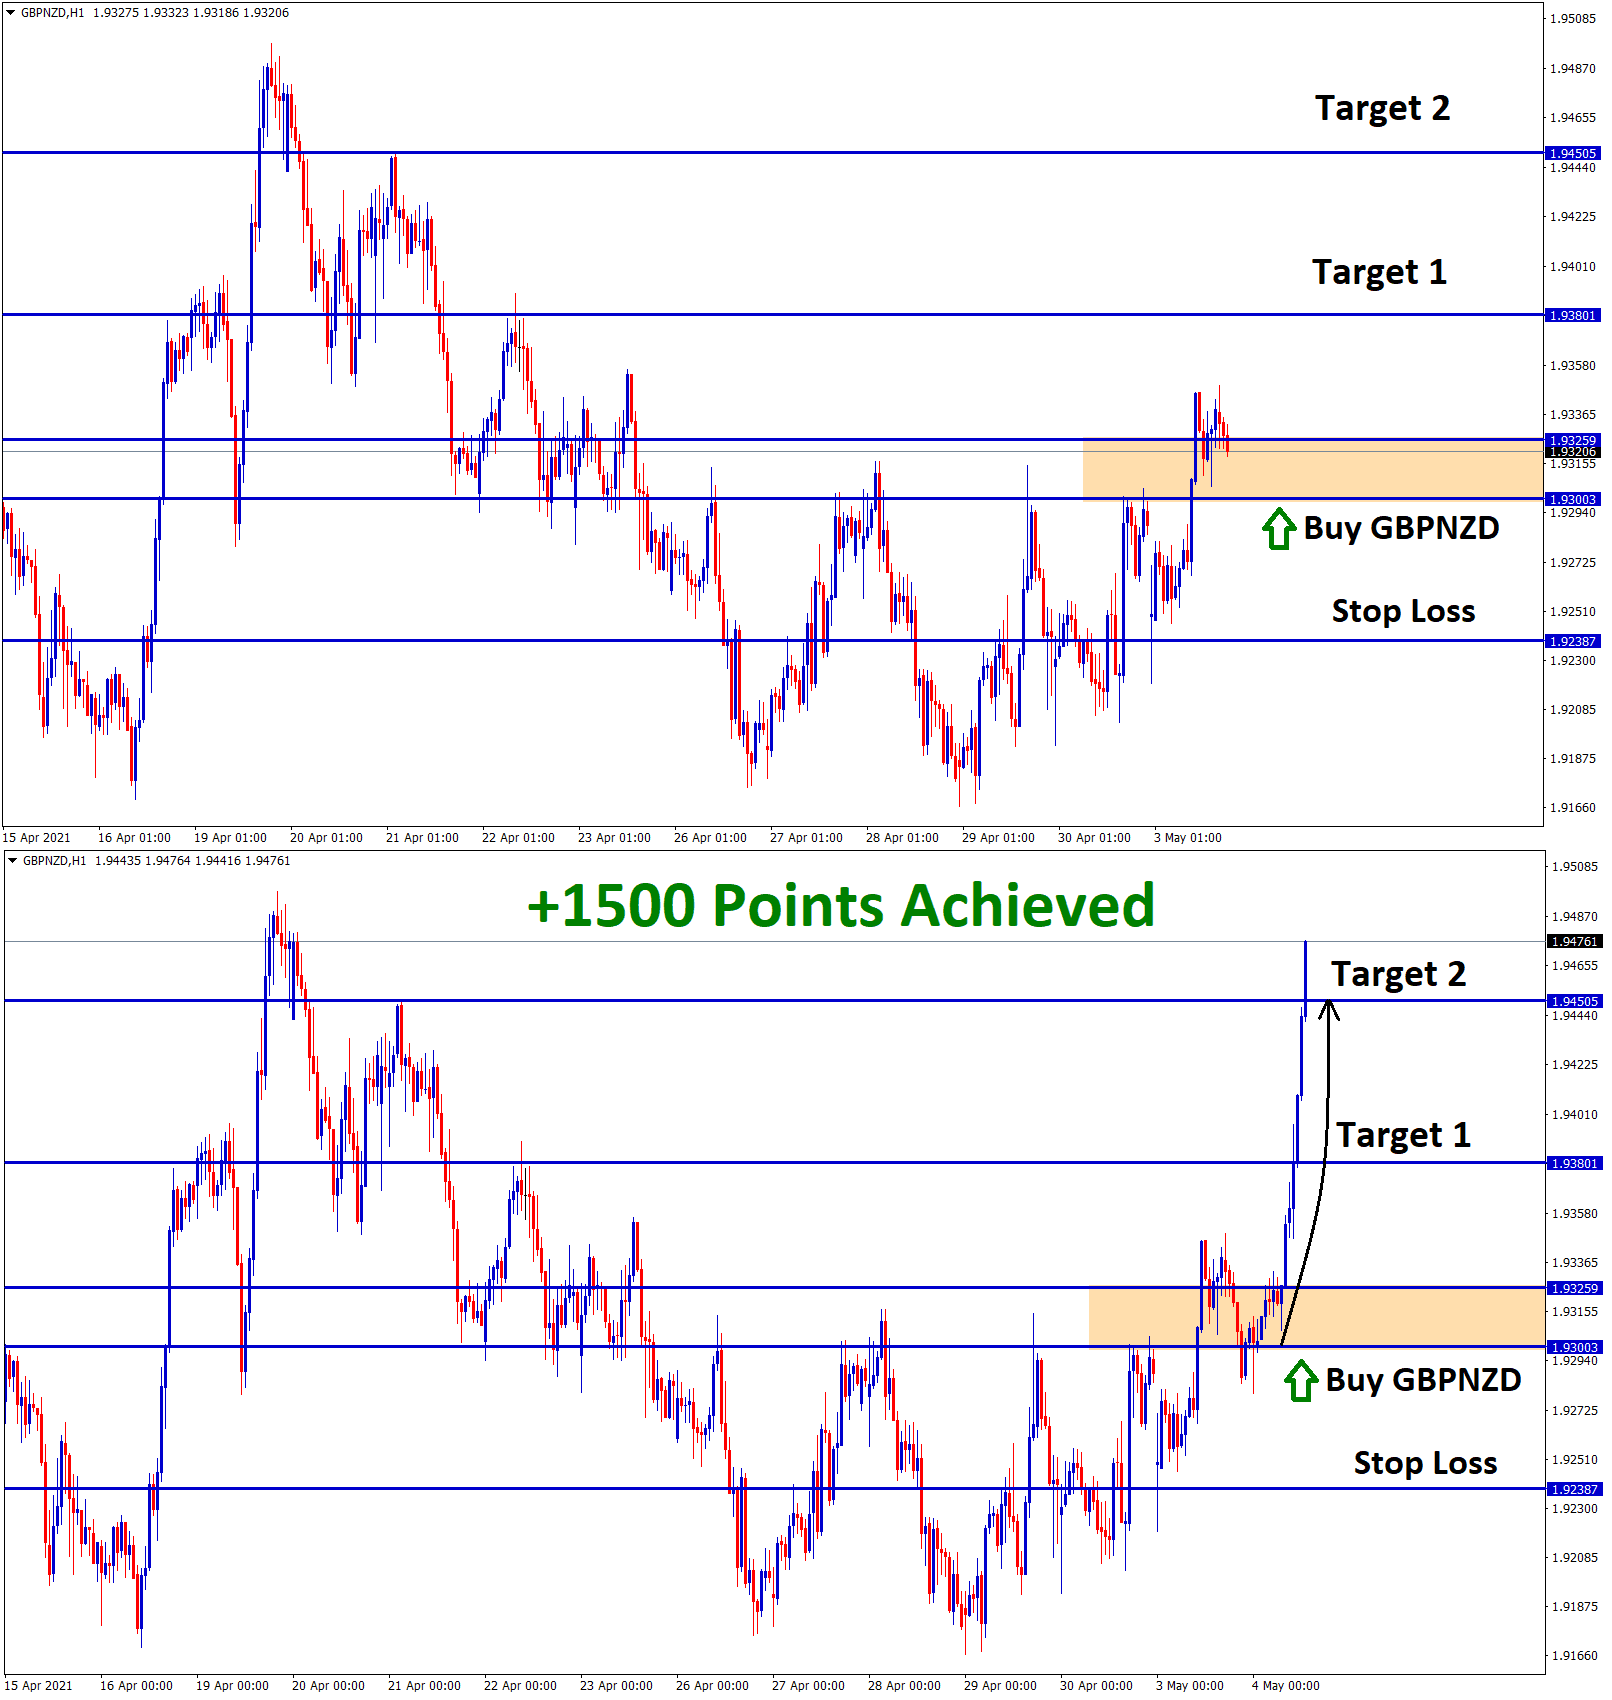 1500 points achieved in gbpnzd buy signal after triangle breakout